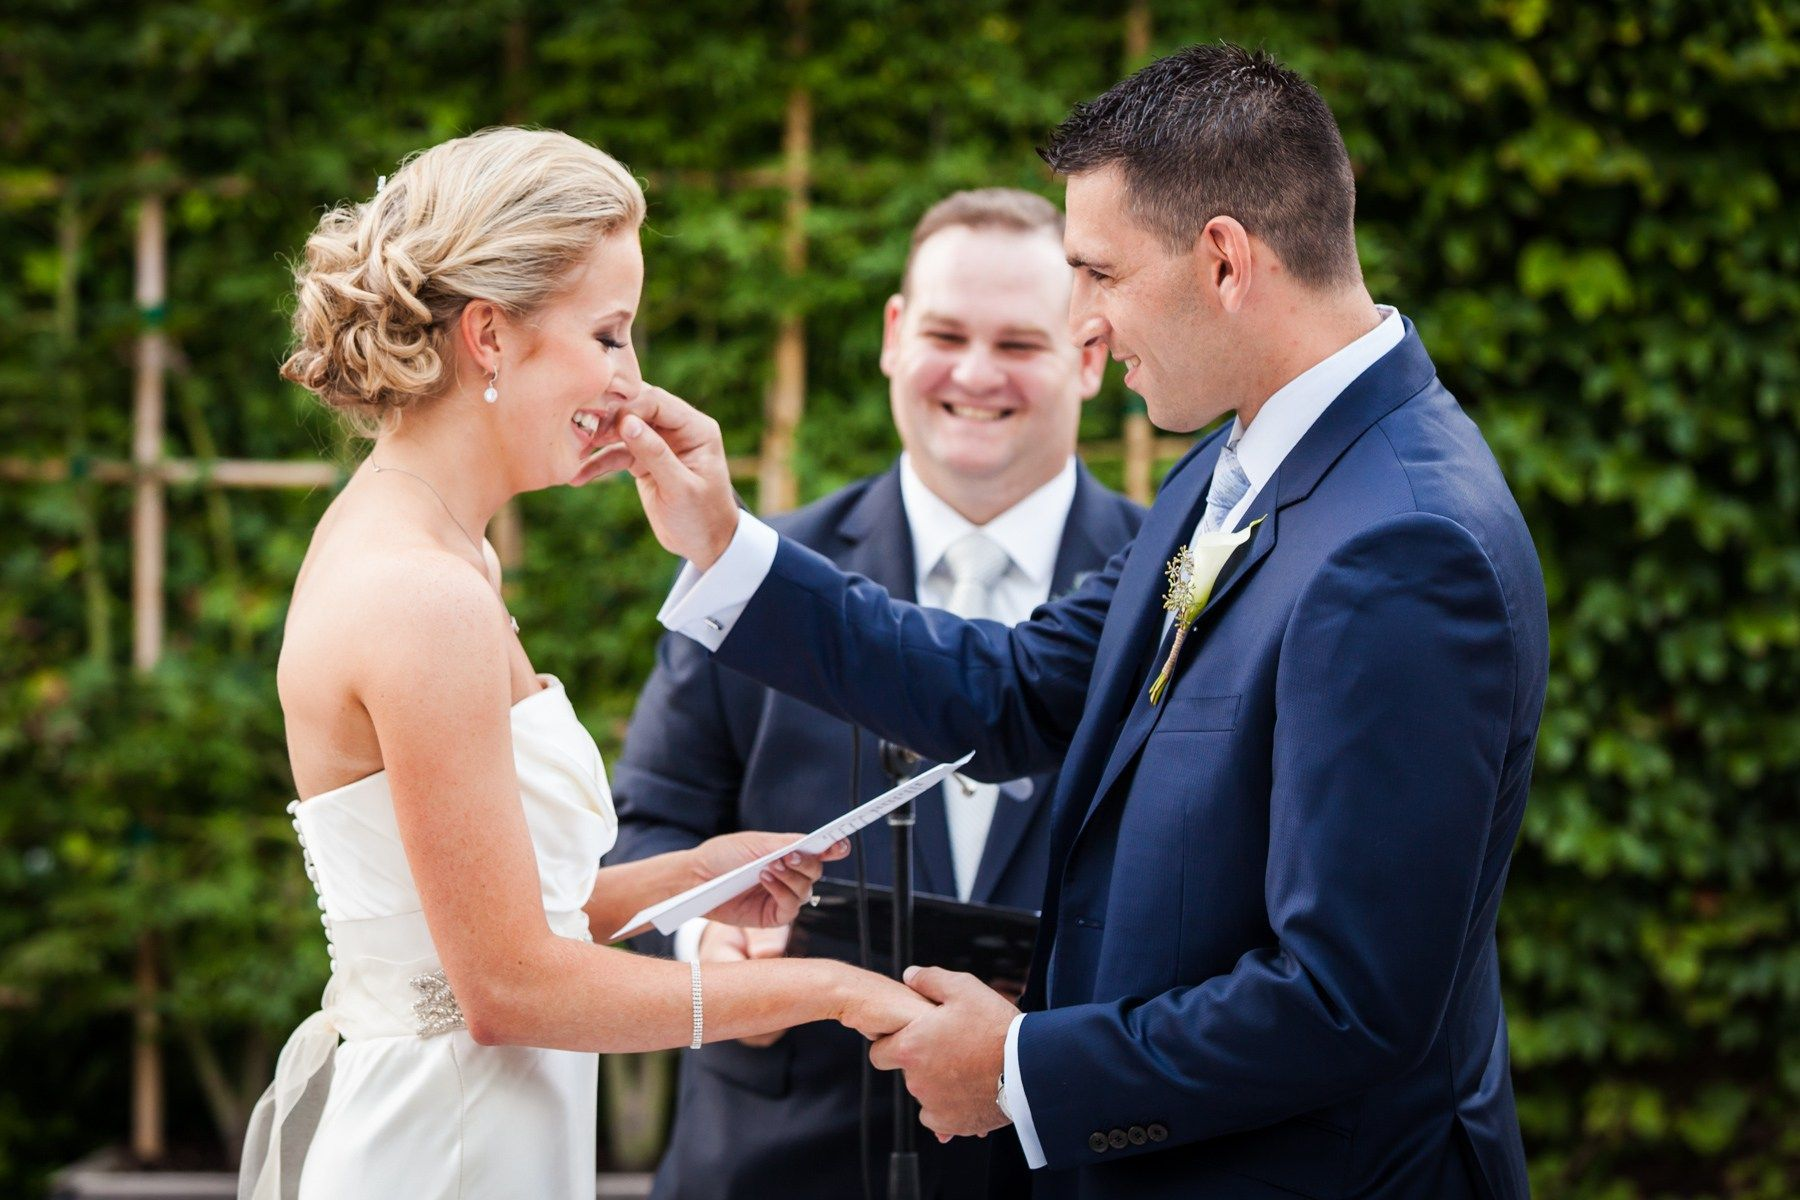 It's the new trend that is sweeping the wedding industry